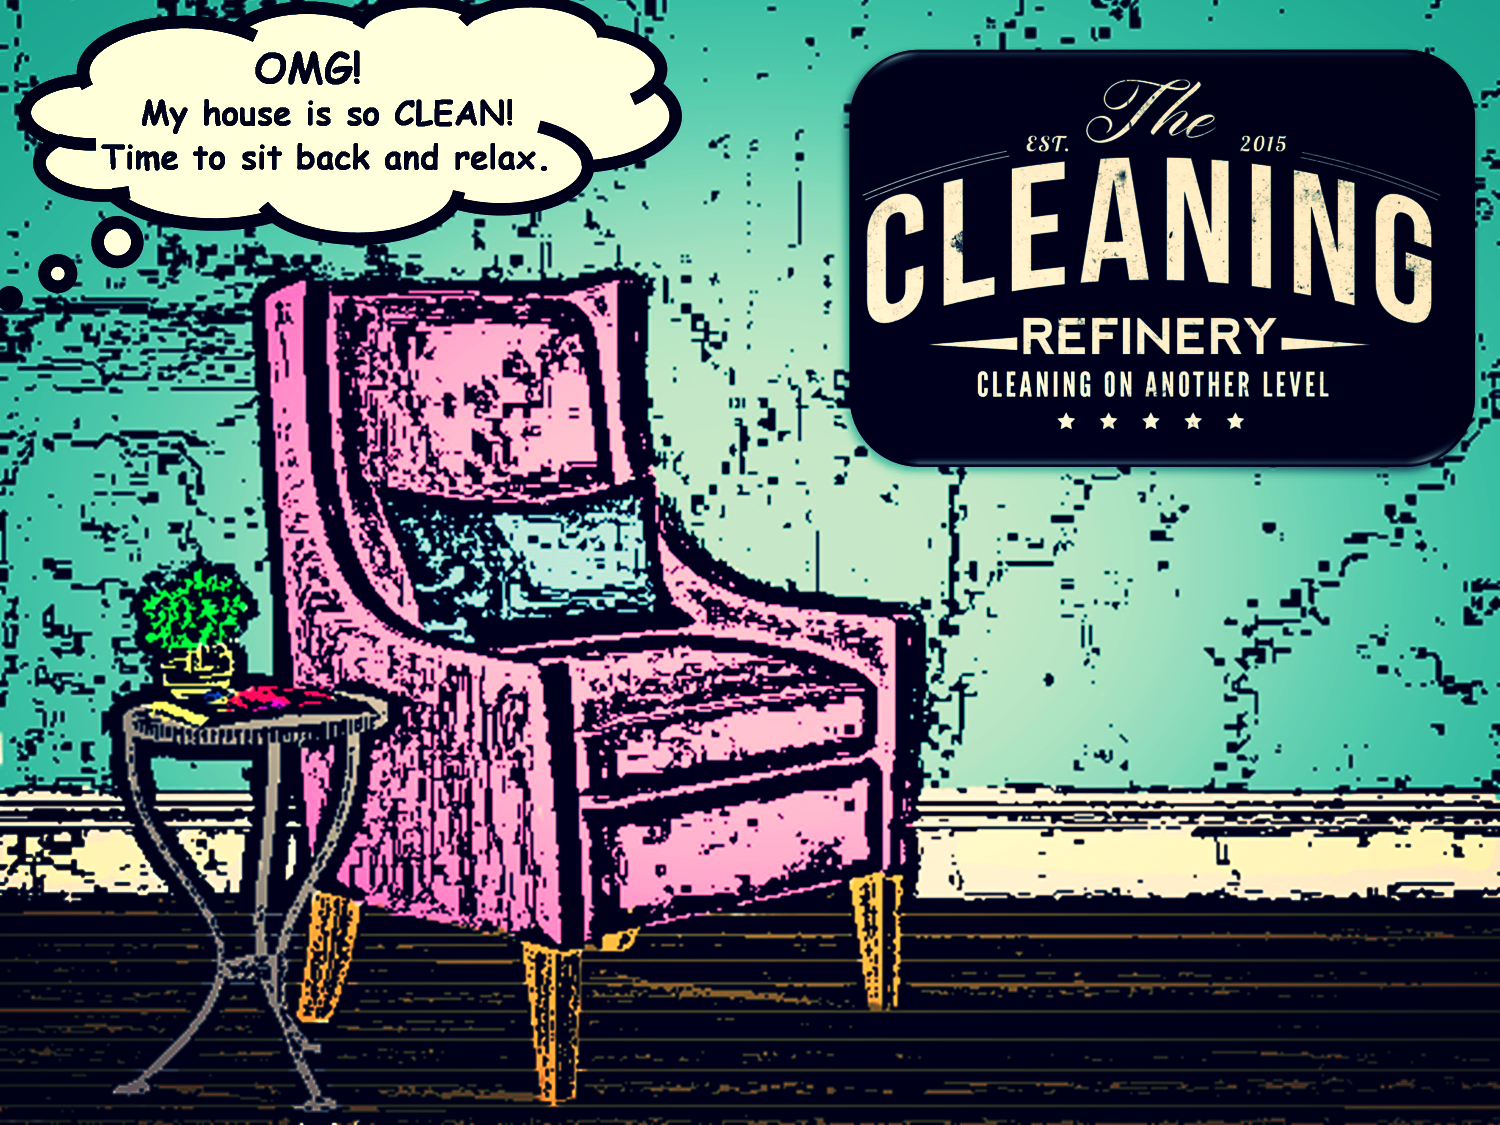 The Cleaning Refinery We offer a wide range of home cleaning.  We will do almost anything that needs cleaning. From fridges, stoves, small appliances, cupboards, closets etc.  Quick and efficient - we get the job done. Our deep cleaning service is seriously detail oriented.  It is less a functionally appealing clean, but rather an extreme clean.  Getting in crack & creavices with presion tools.  https://www.facebook.com/thecleaningre